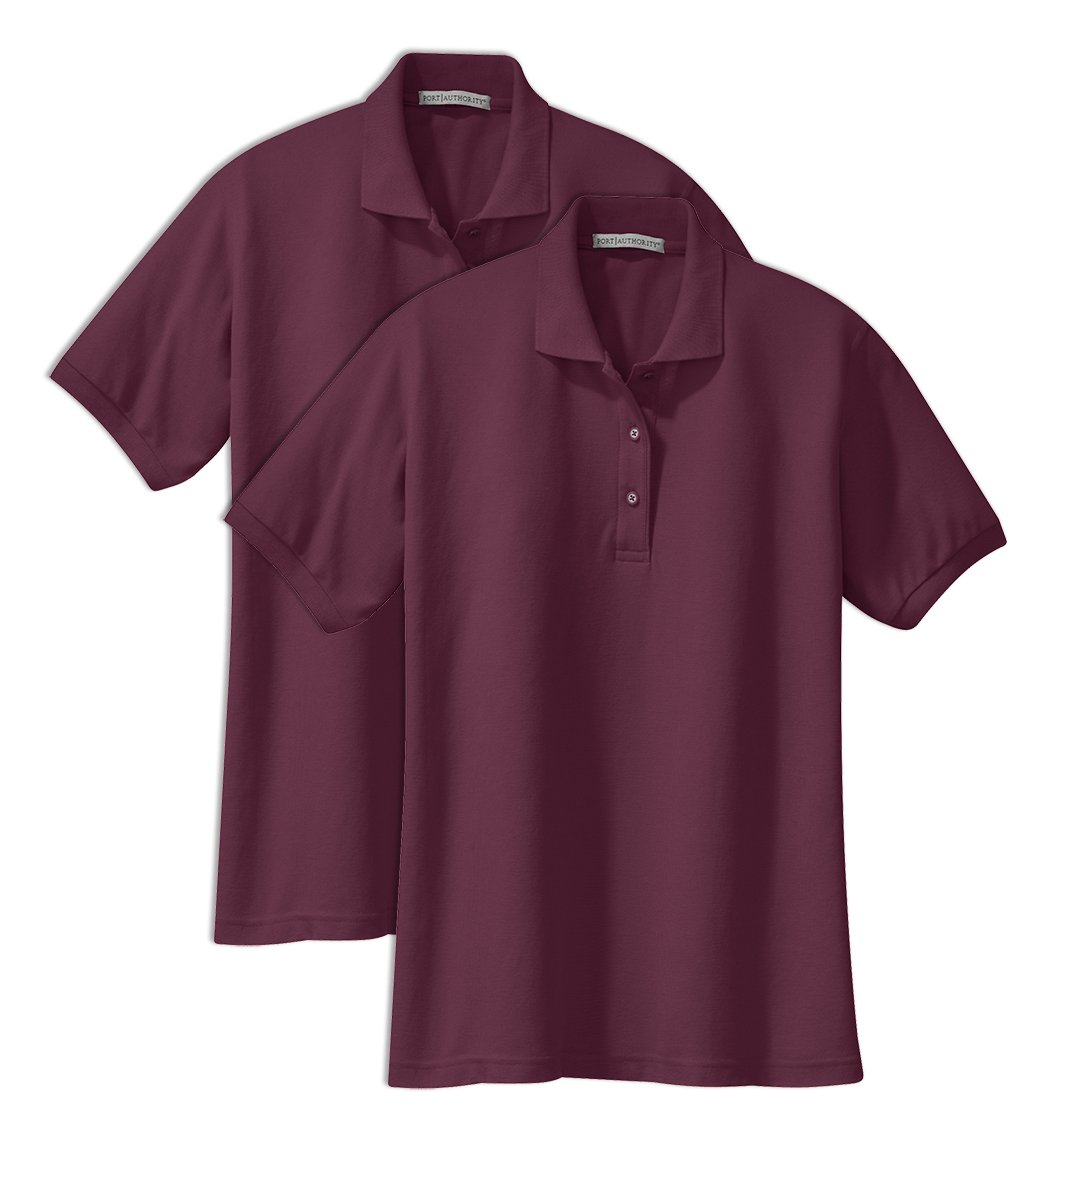 Port Authority L500 Ladies Silk Touch Polo 4XL Maroon (Pack of 2) by Port Authority